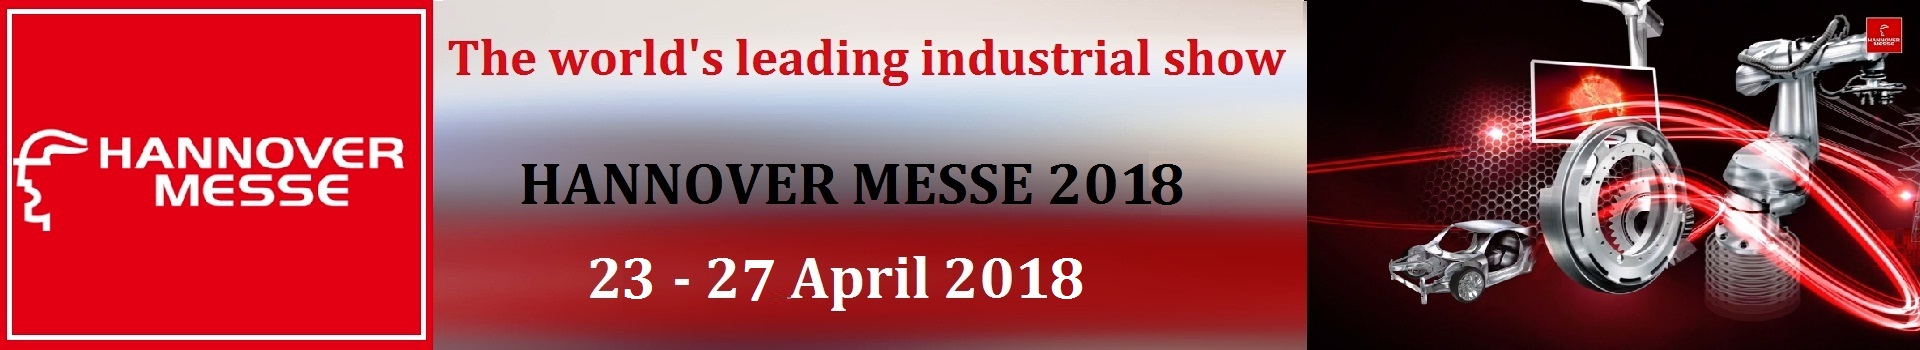 Matchmaking @ Hannover Messe 2018